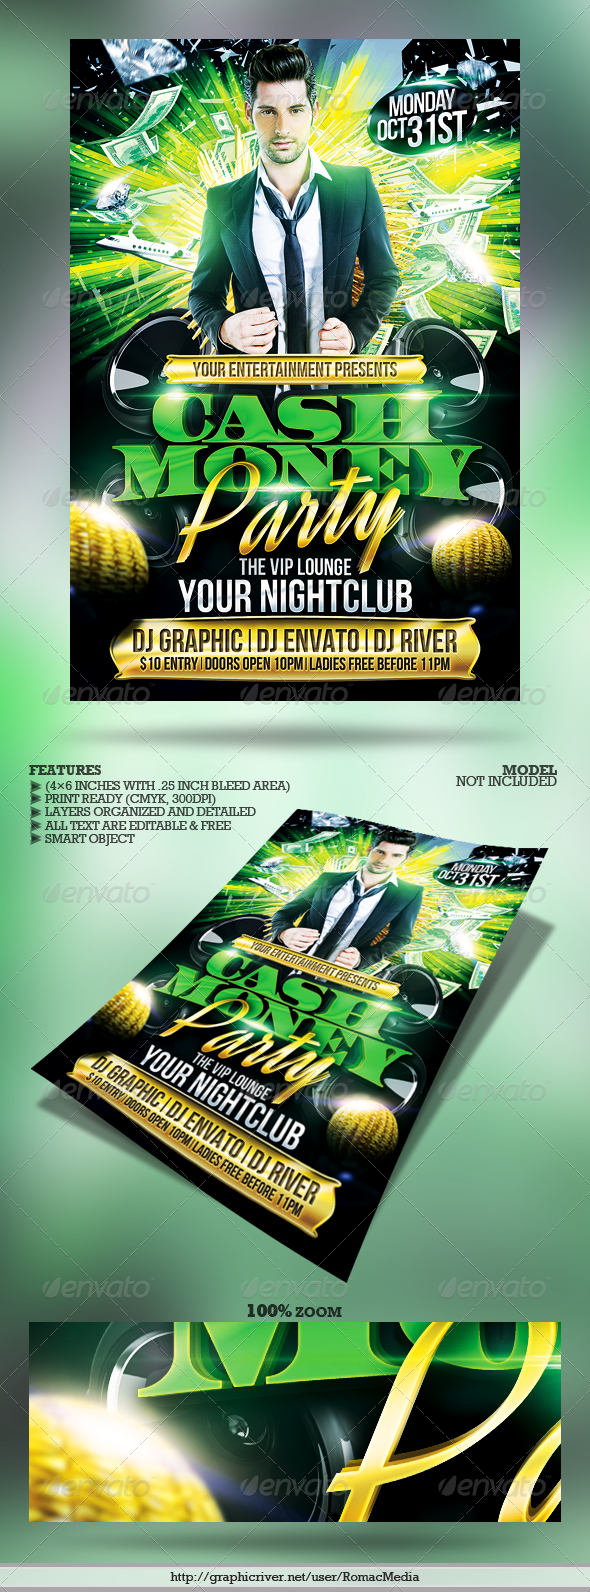 club sessions l cash money party flyer graphicriver. Black Bedroom Furniture Sets. Home Design Ideas